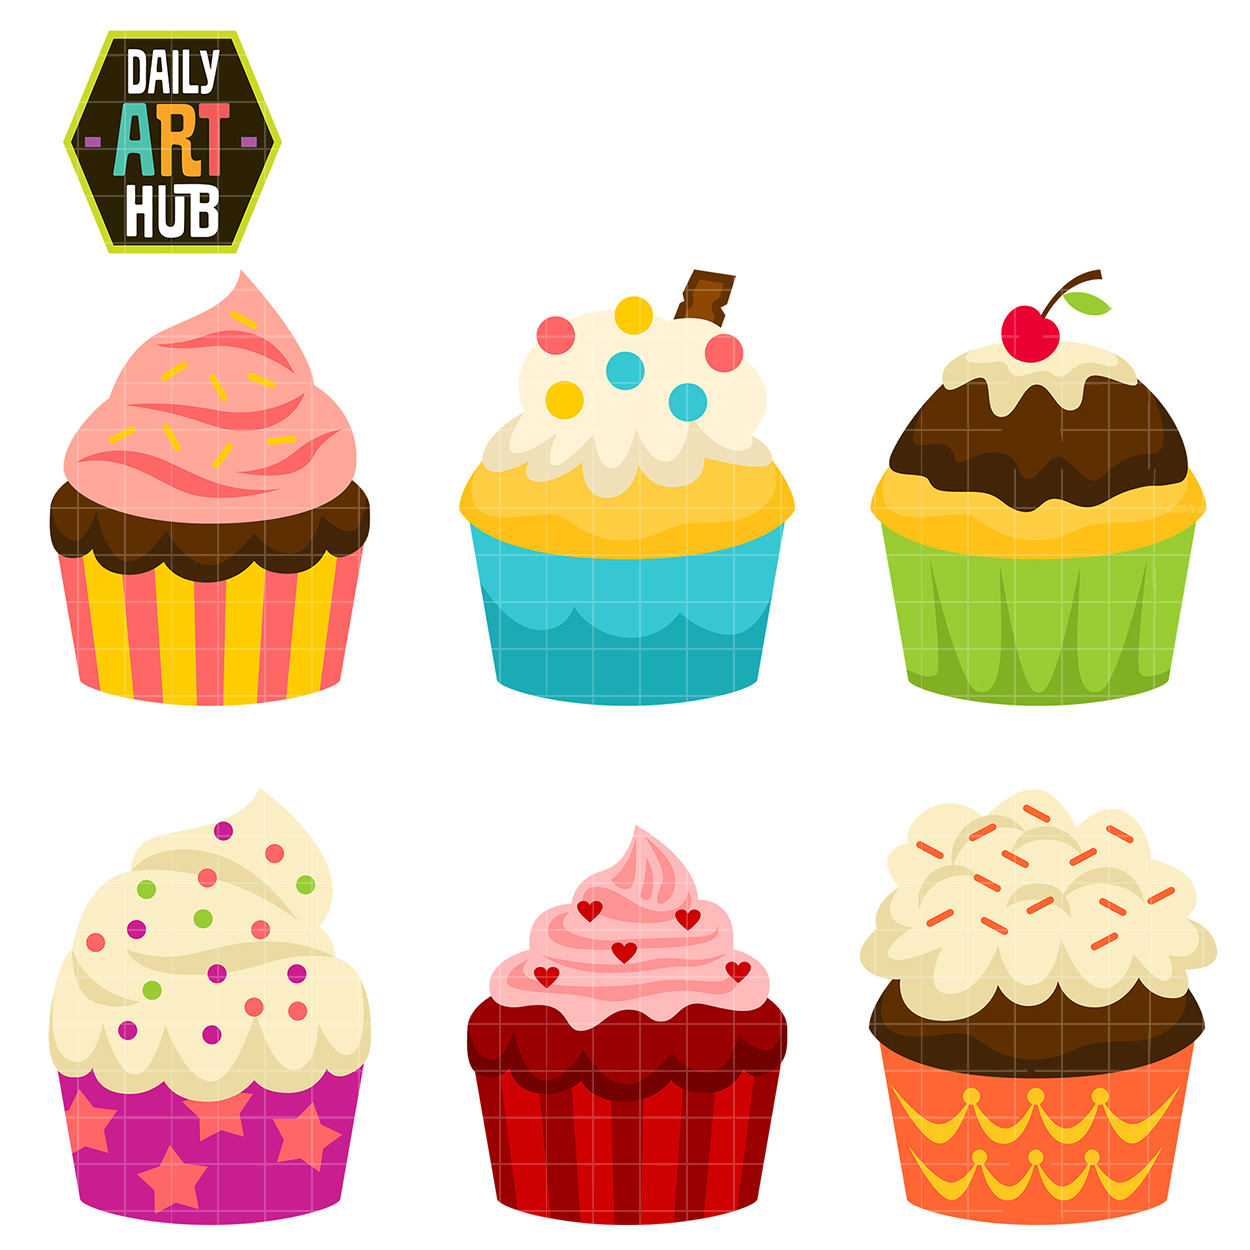 Cupcake and cake clipart.